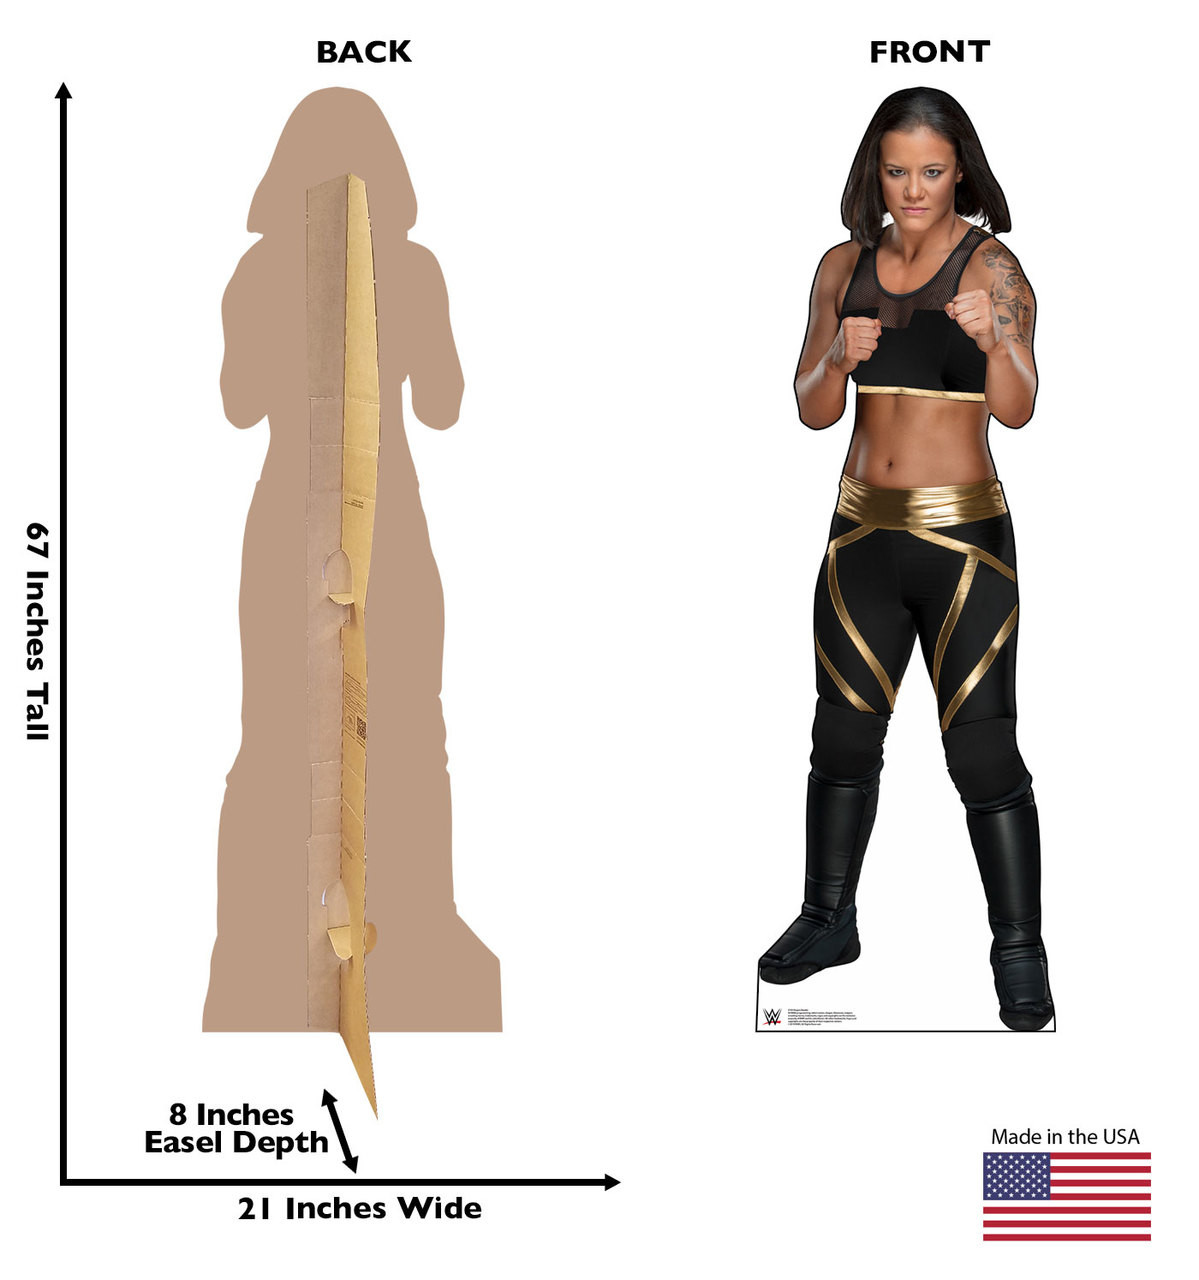 Shayna Baszier Life-size cardboard standee front and back with dimensions.